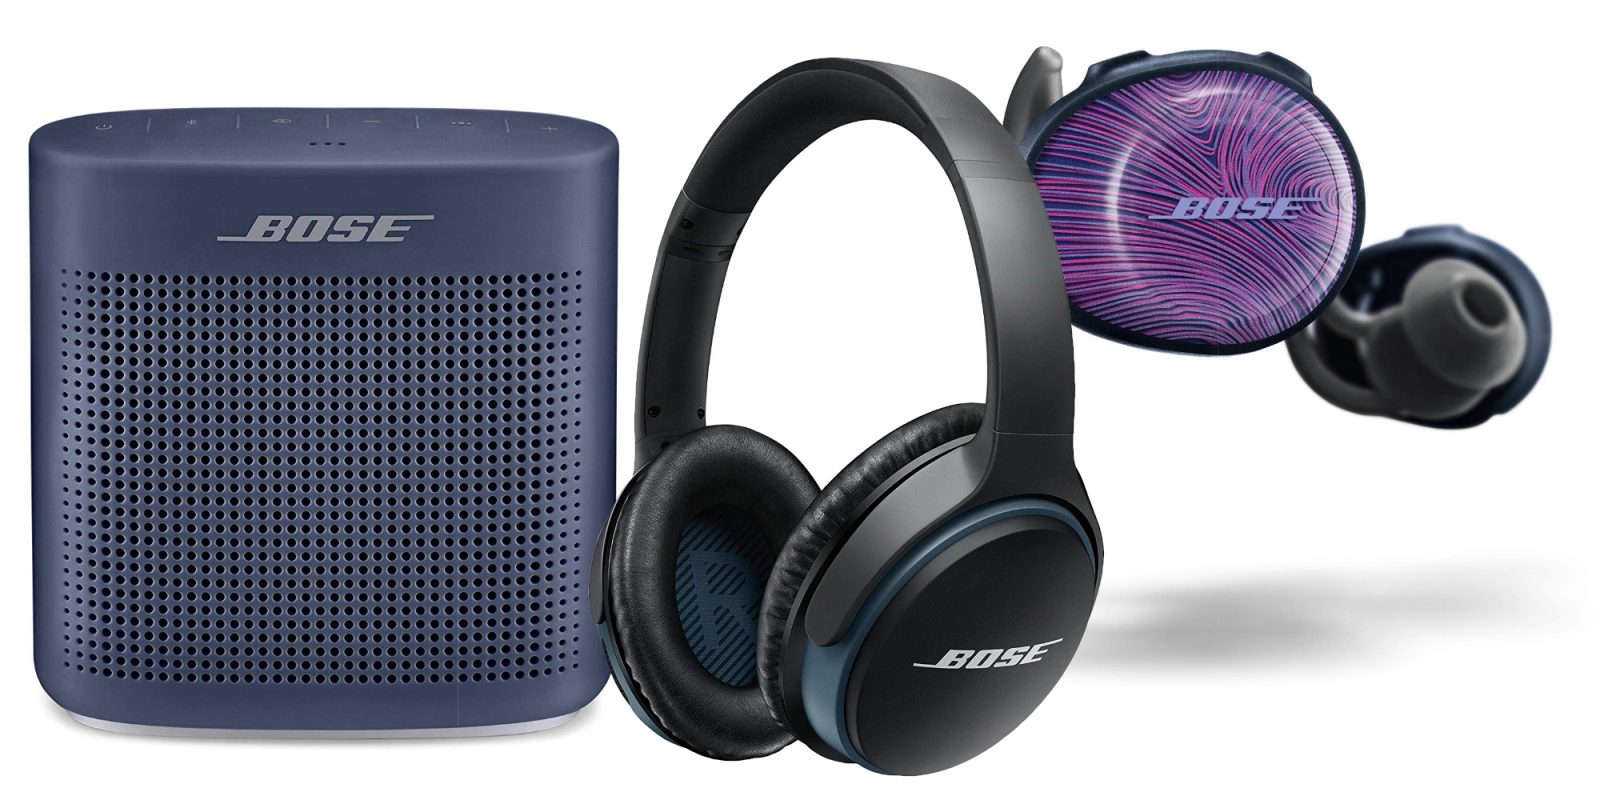 Score new all-time lows on Bose headphones + speakers for